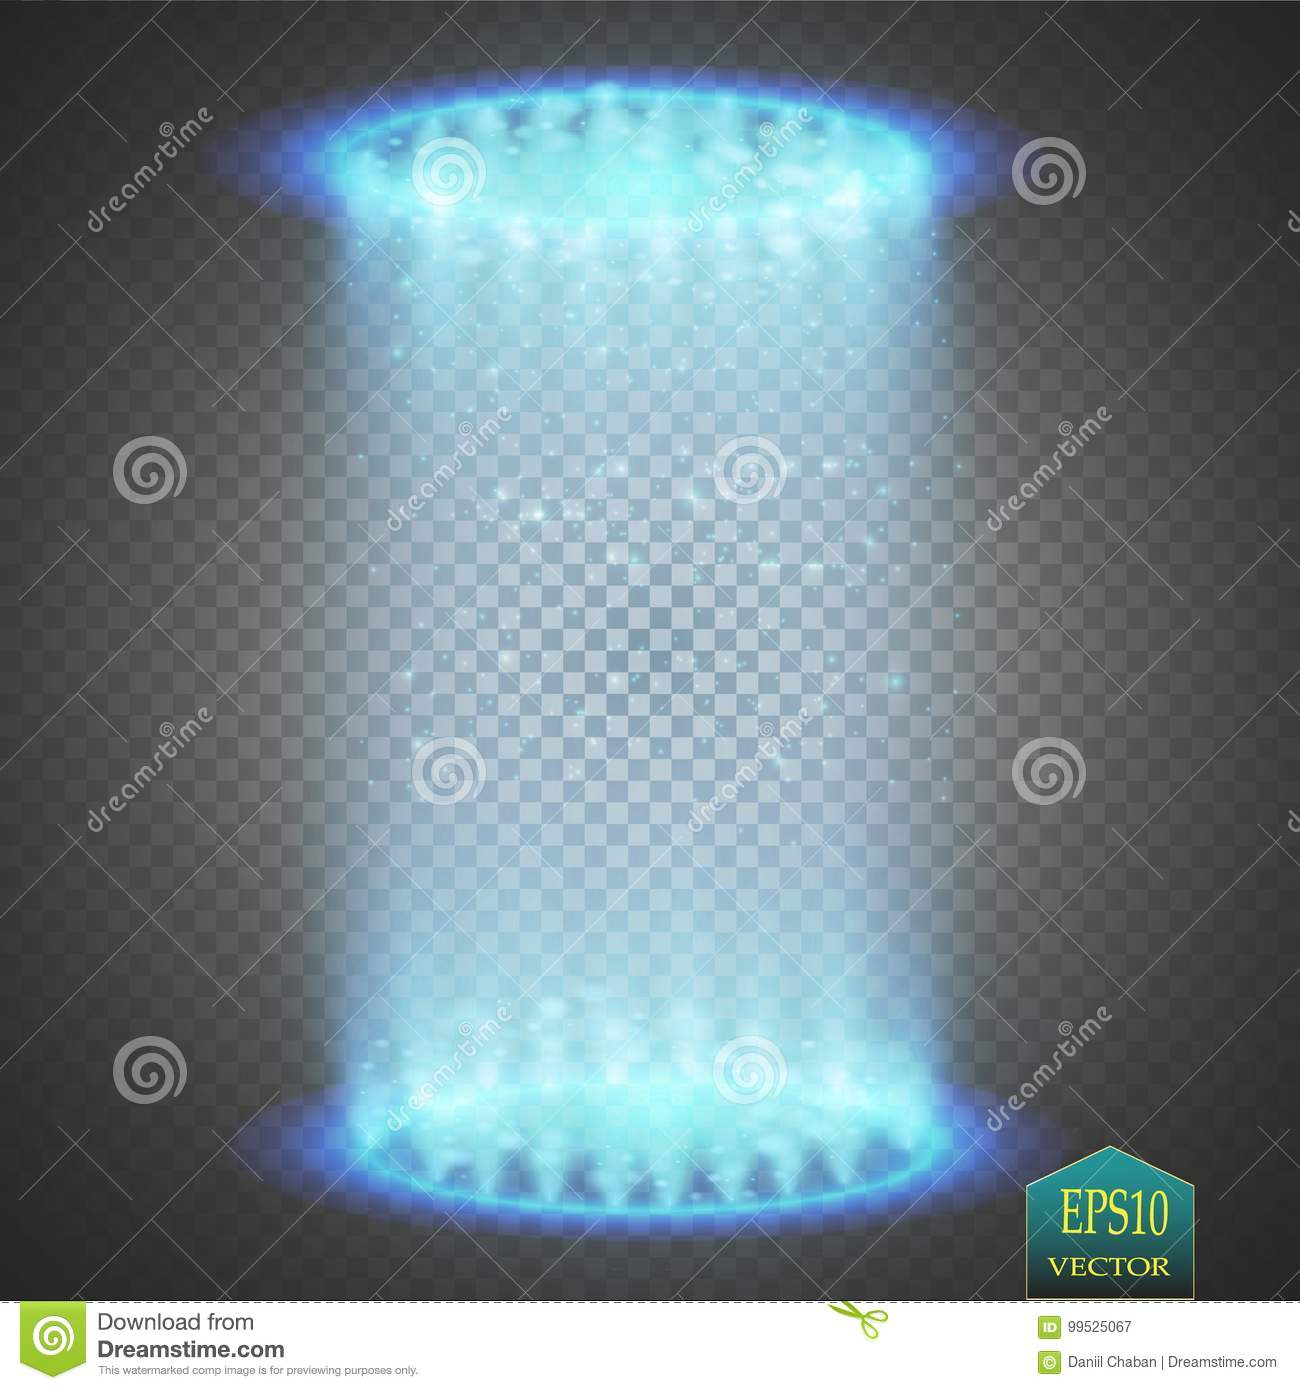 Round blue glow rays night scene with sparks on transparent background. Empty light effect podium. Disco club dance